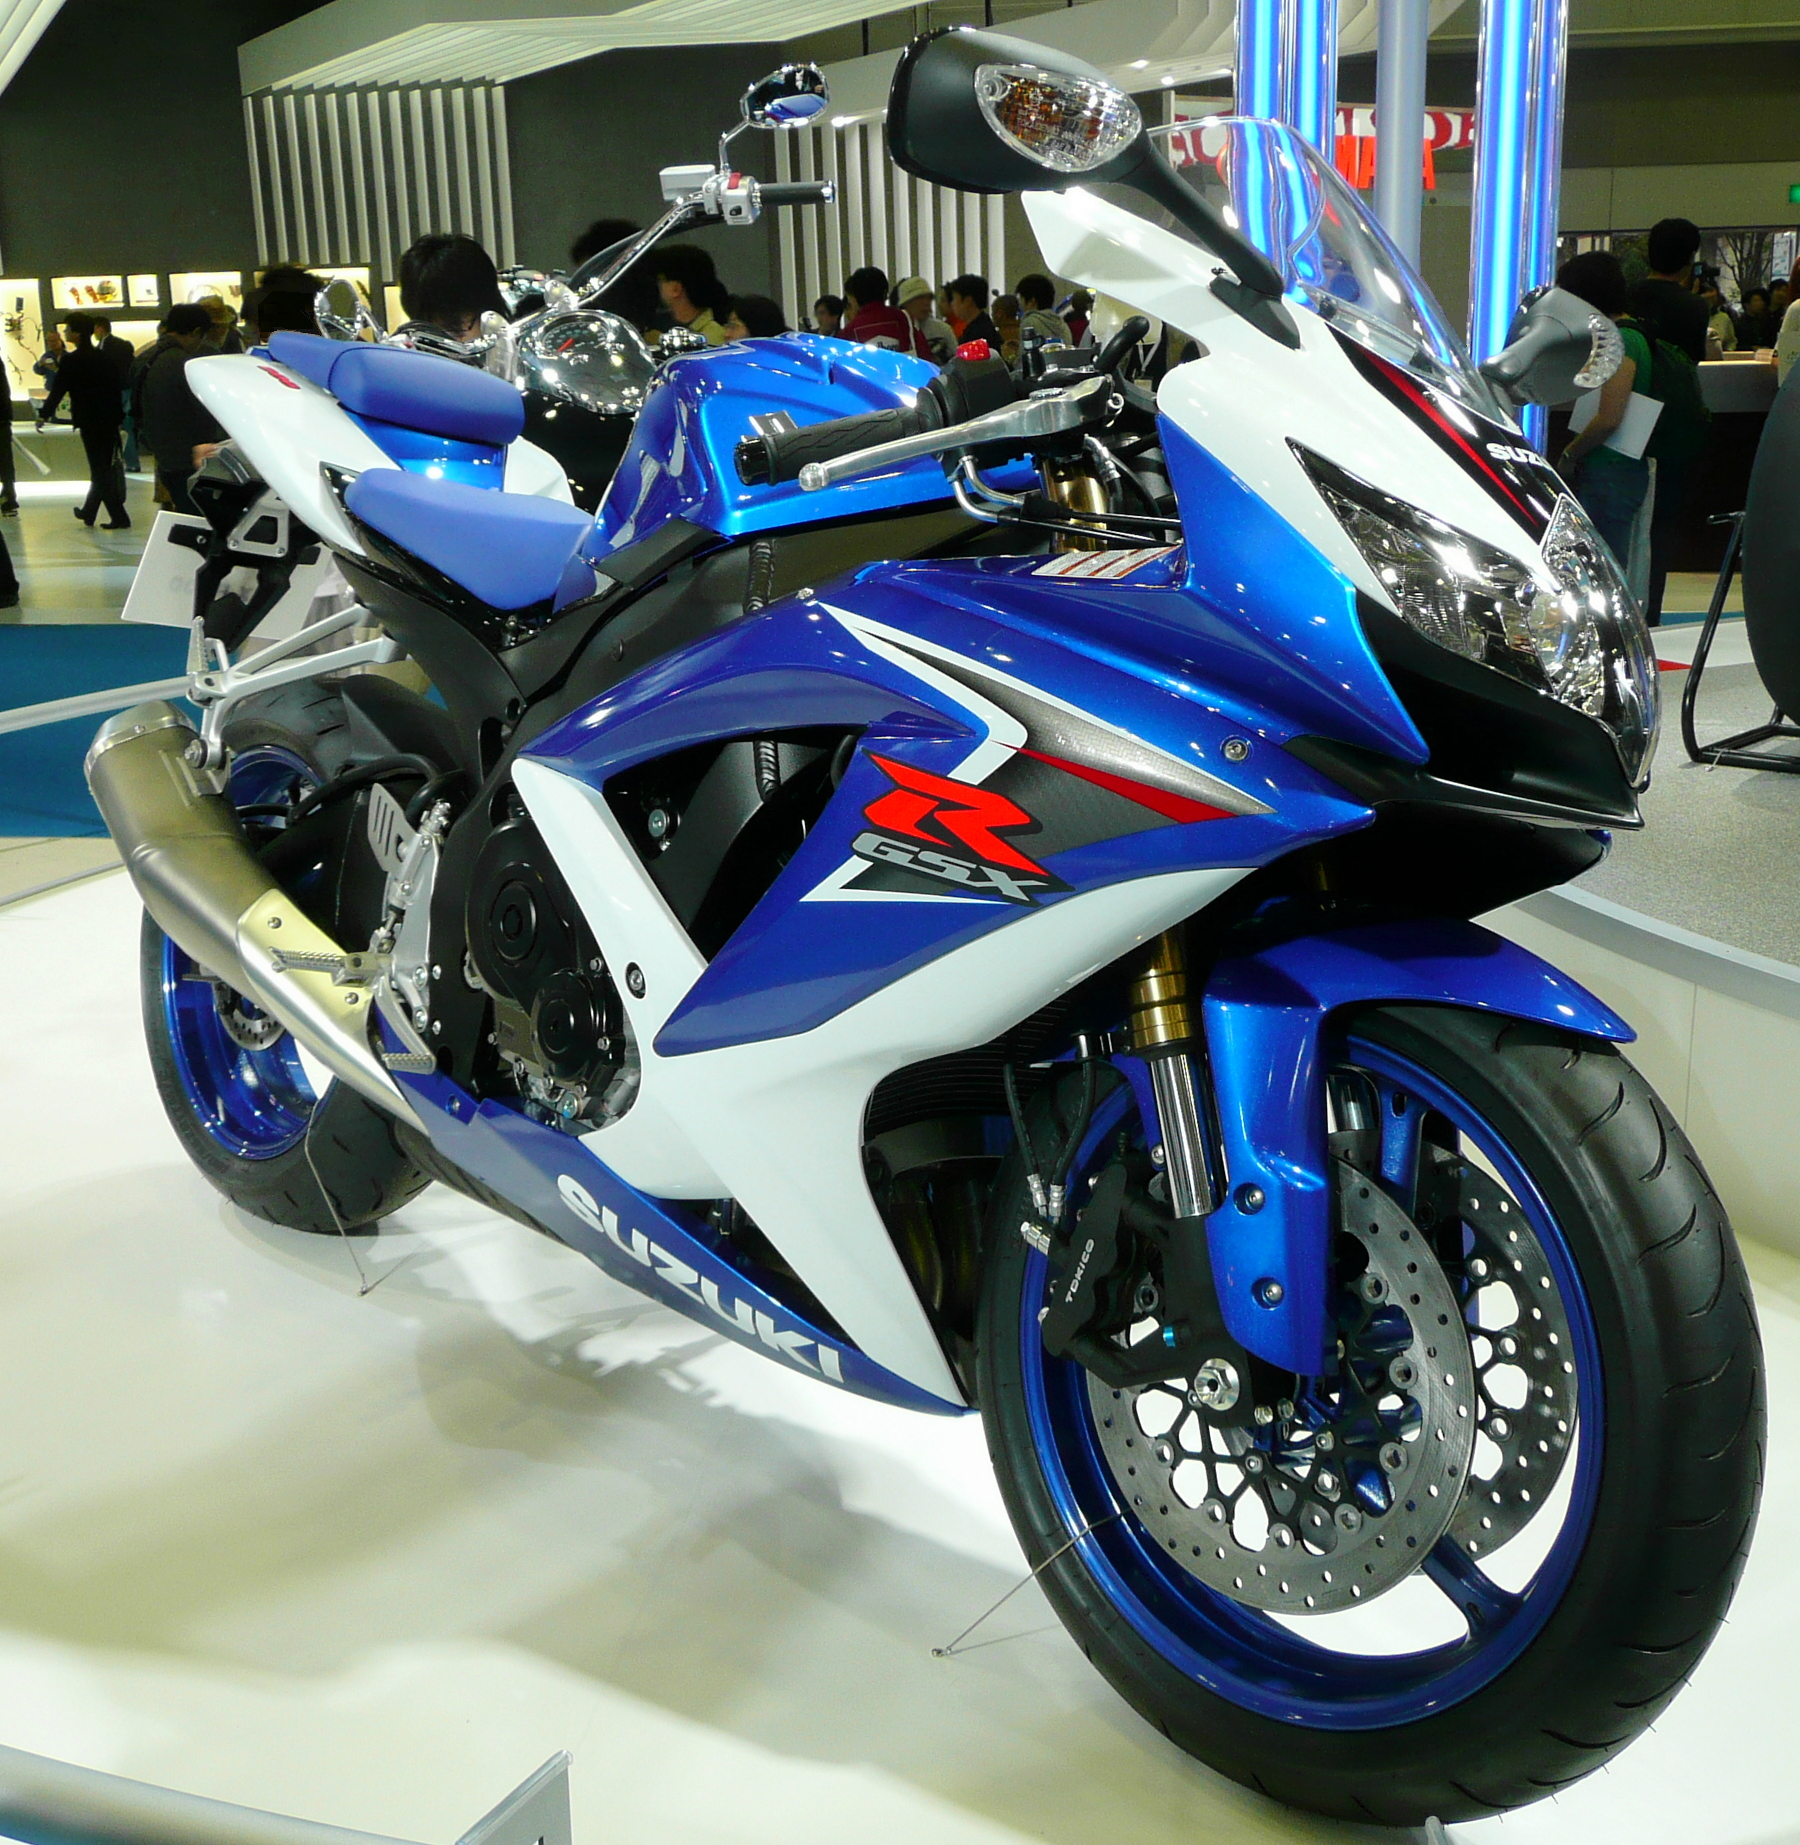 https://i1.wp.com/upload.wikimedia.org/wikipedia/commons/2/2a/2007TMS_Suzuki_GSX-R_600.jpg